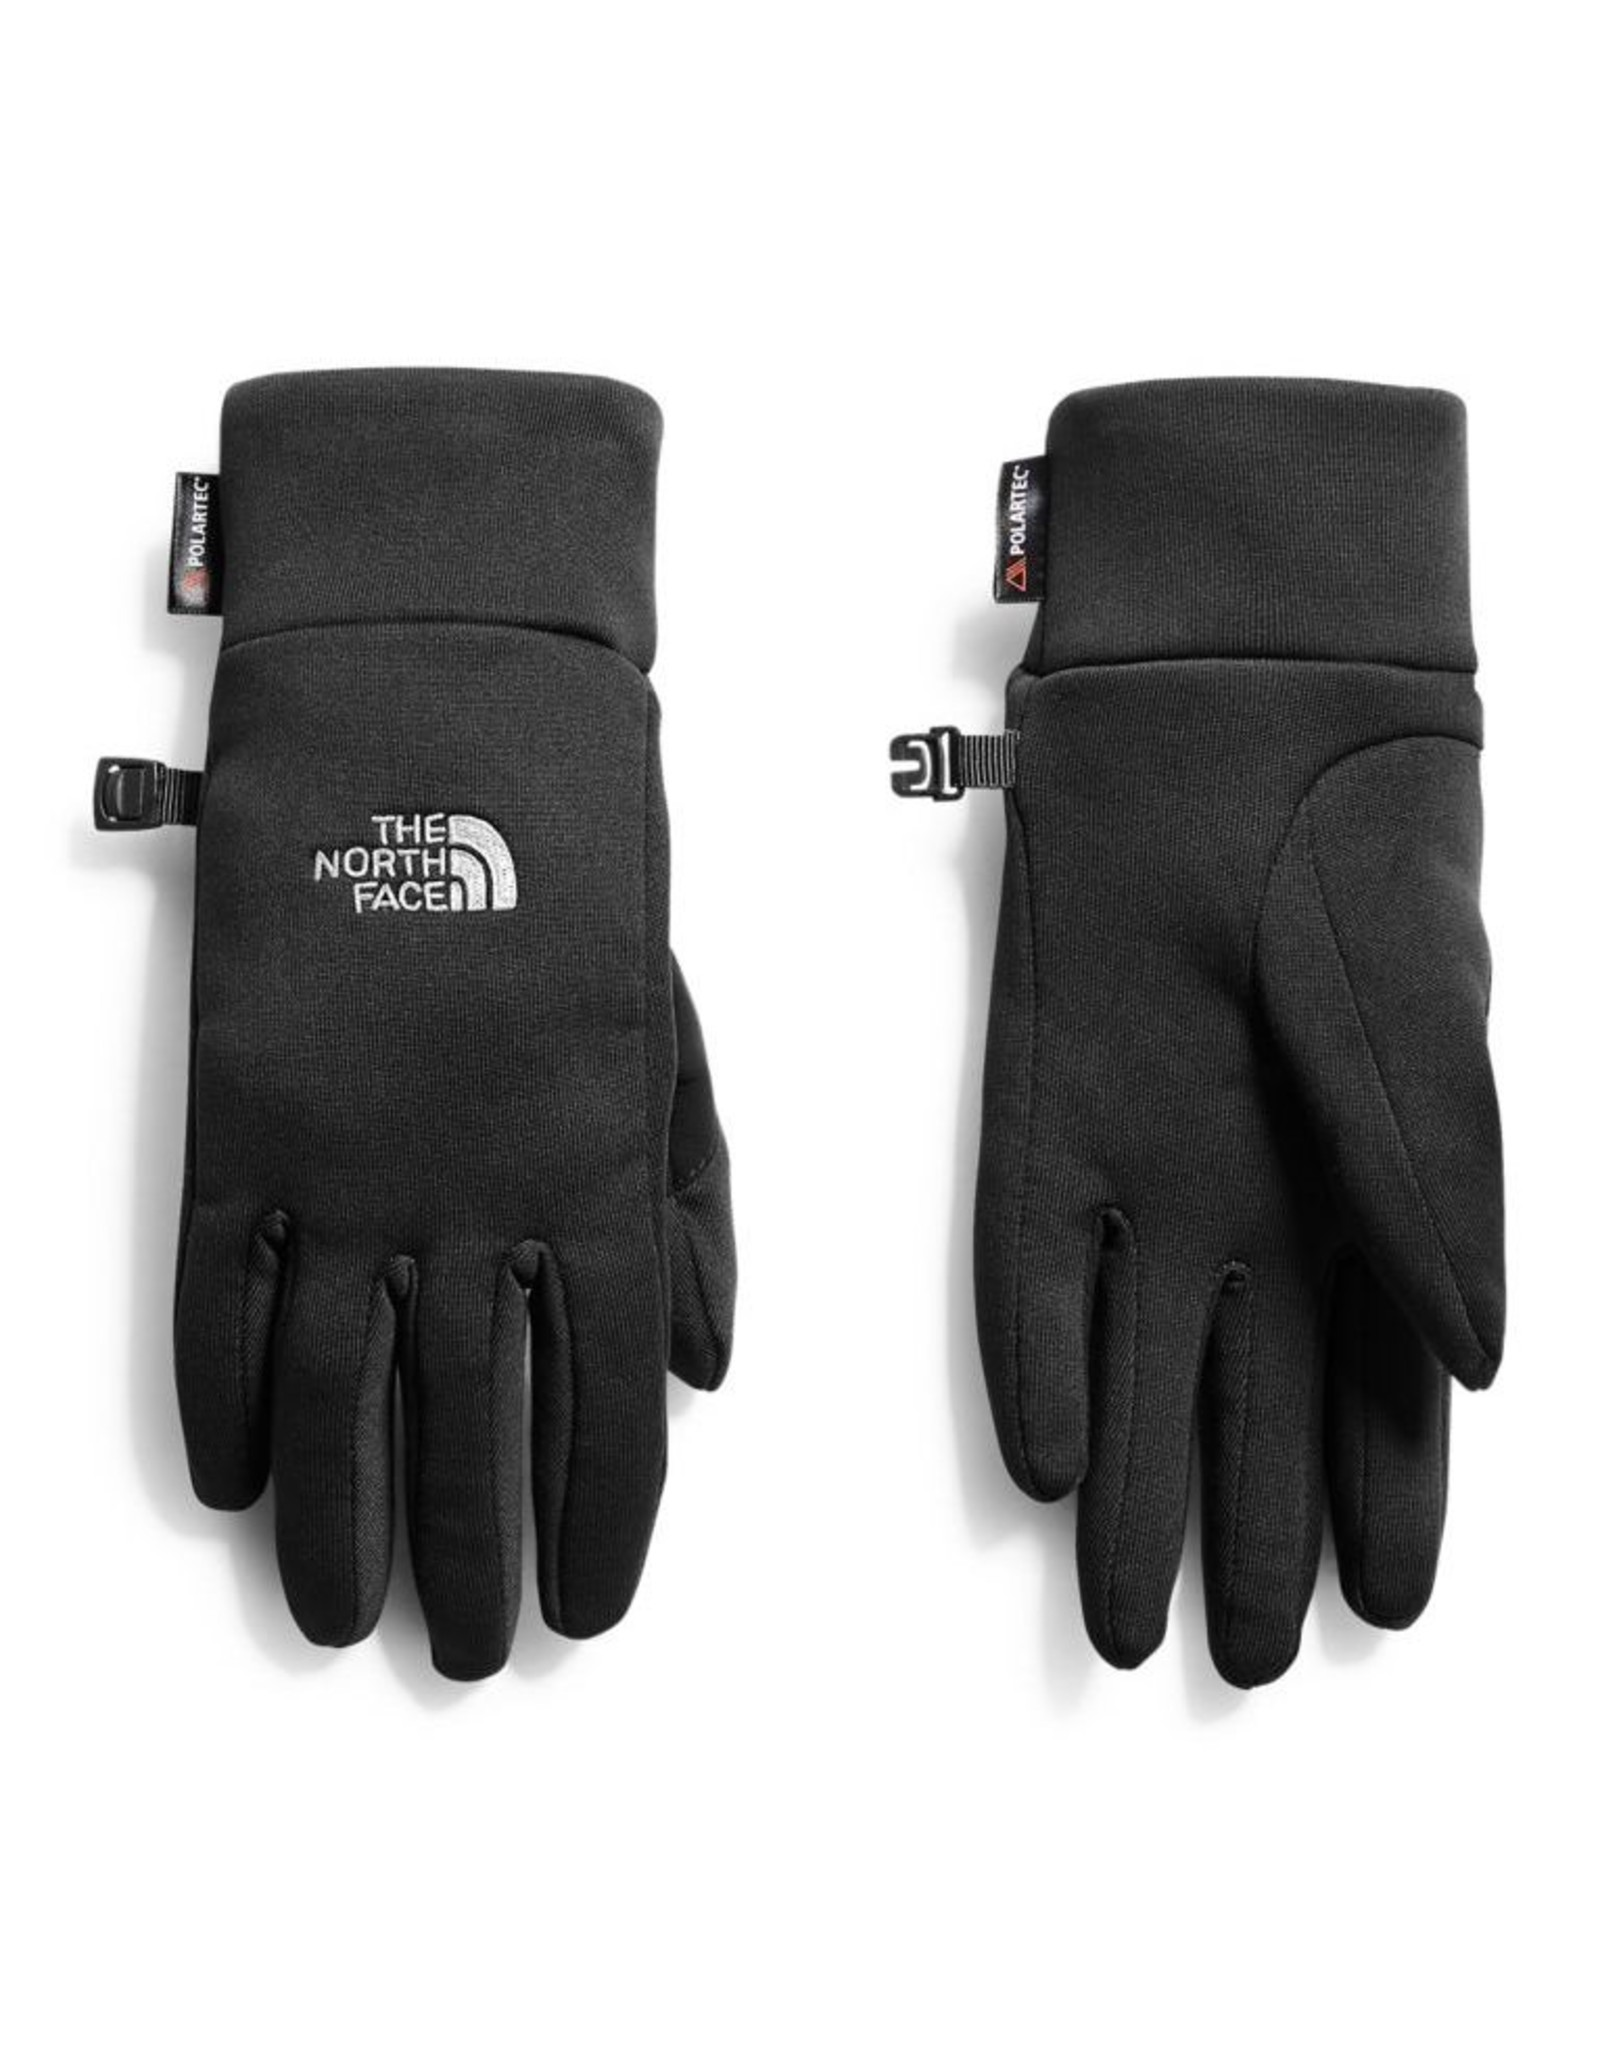 The North Face The North Face Power Stretch Glove